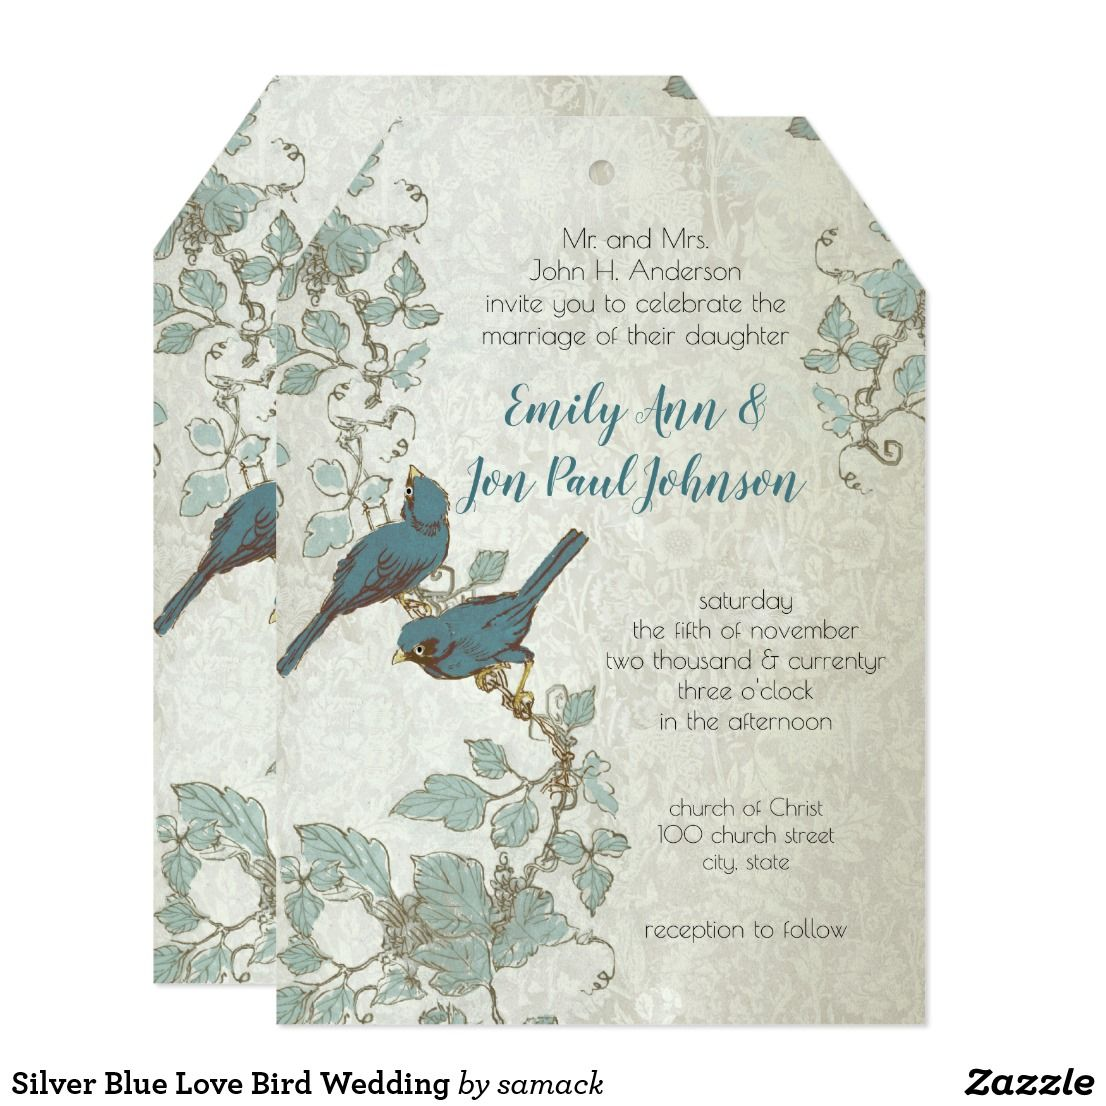 Silver Blue Love Bird Wedding Card | Wedding card, Invites wedding ...